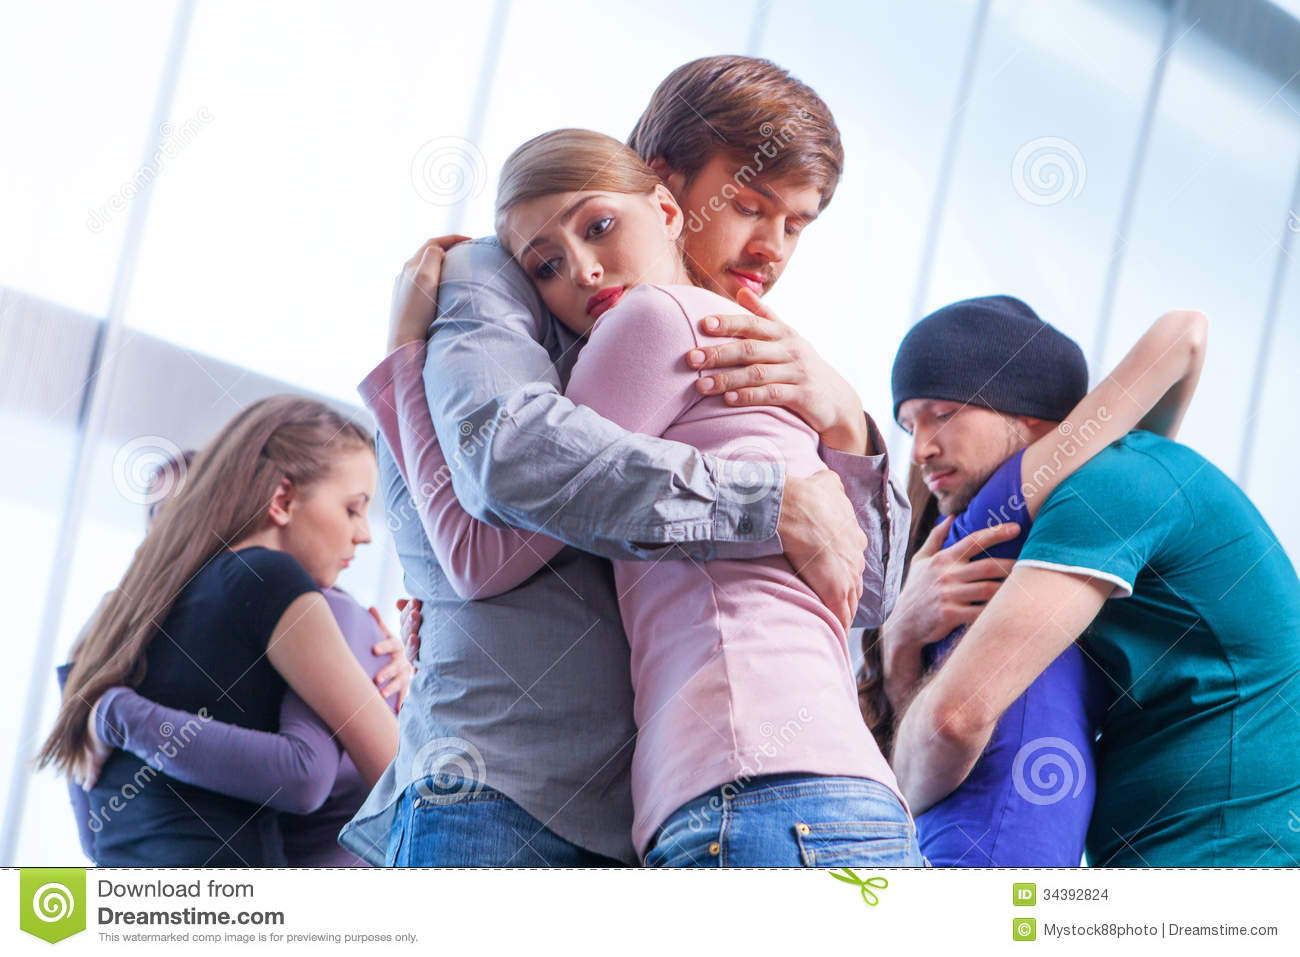 Three Pair Of People Hugging Each Other  Stock Images   Image